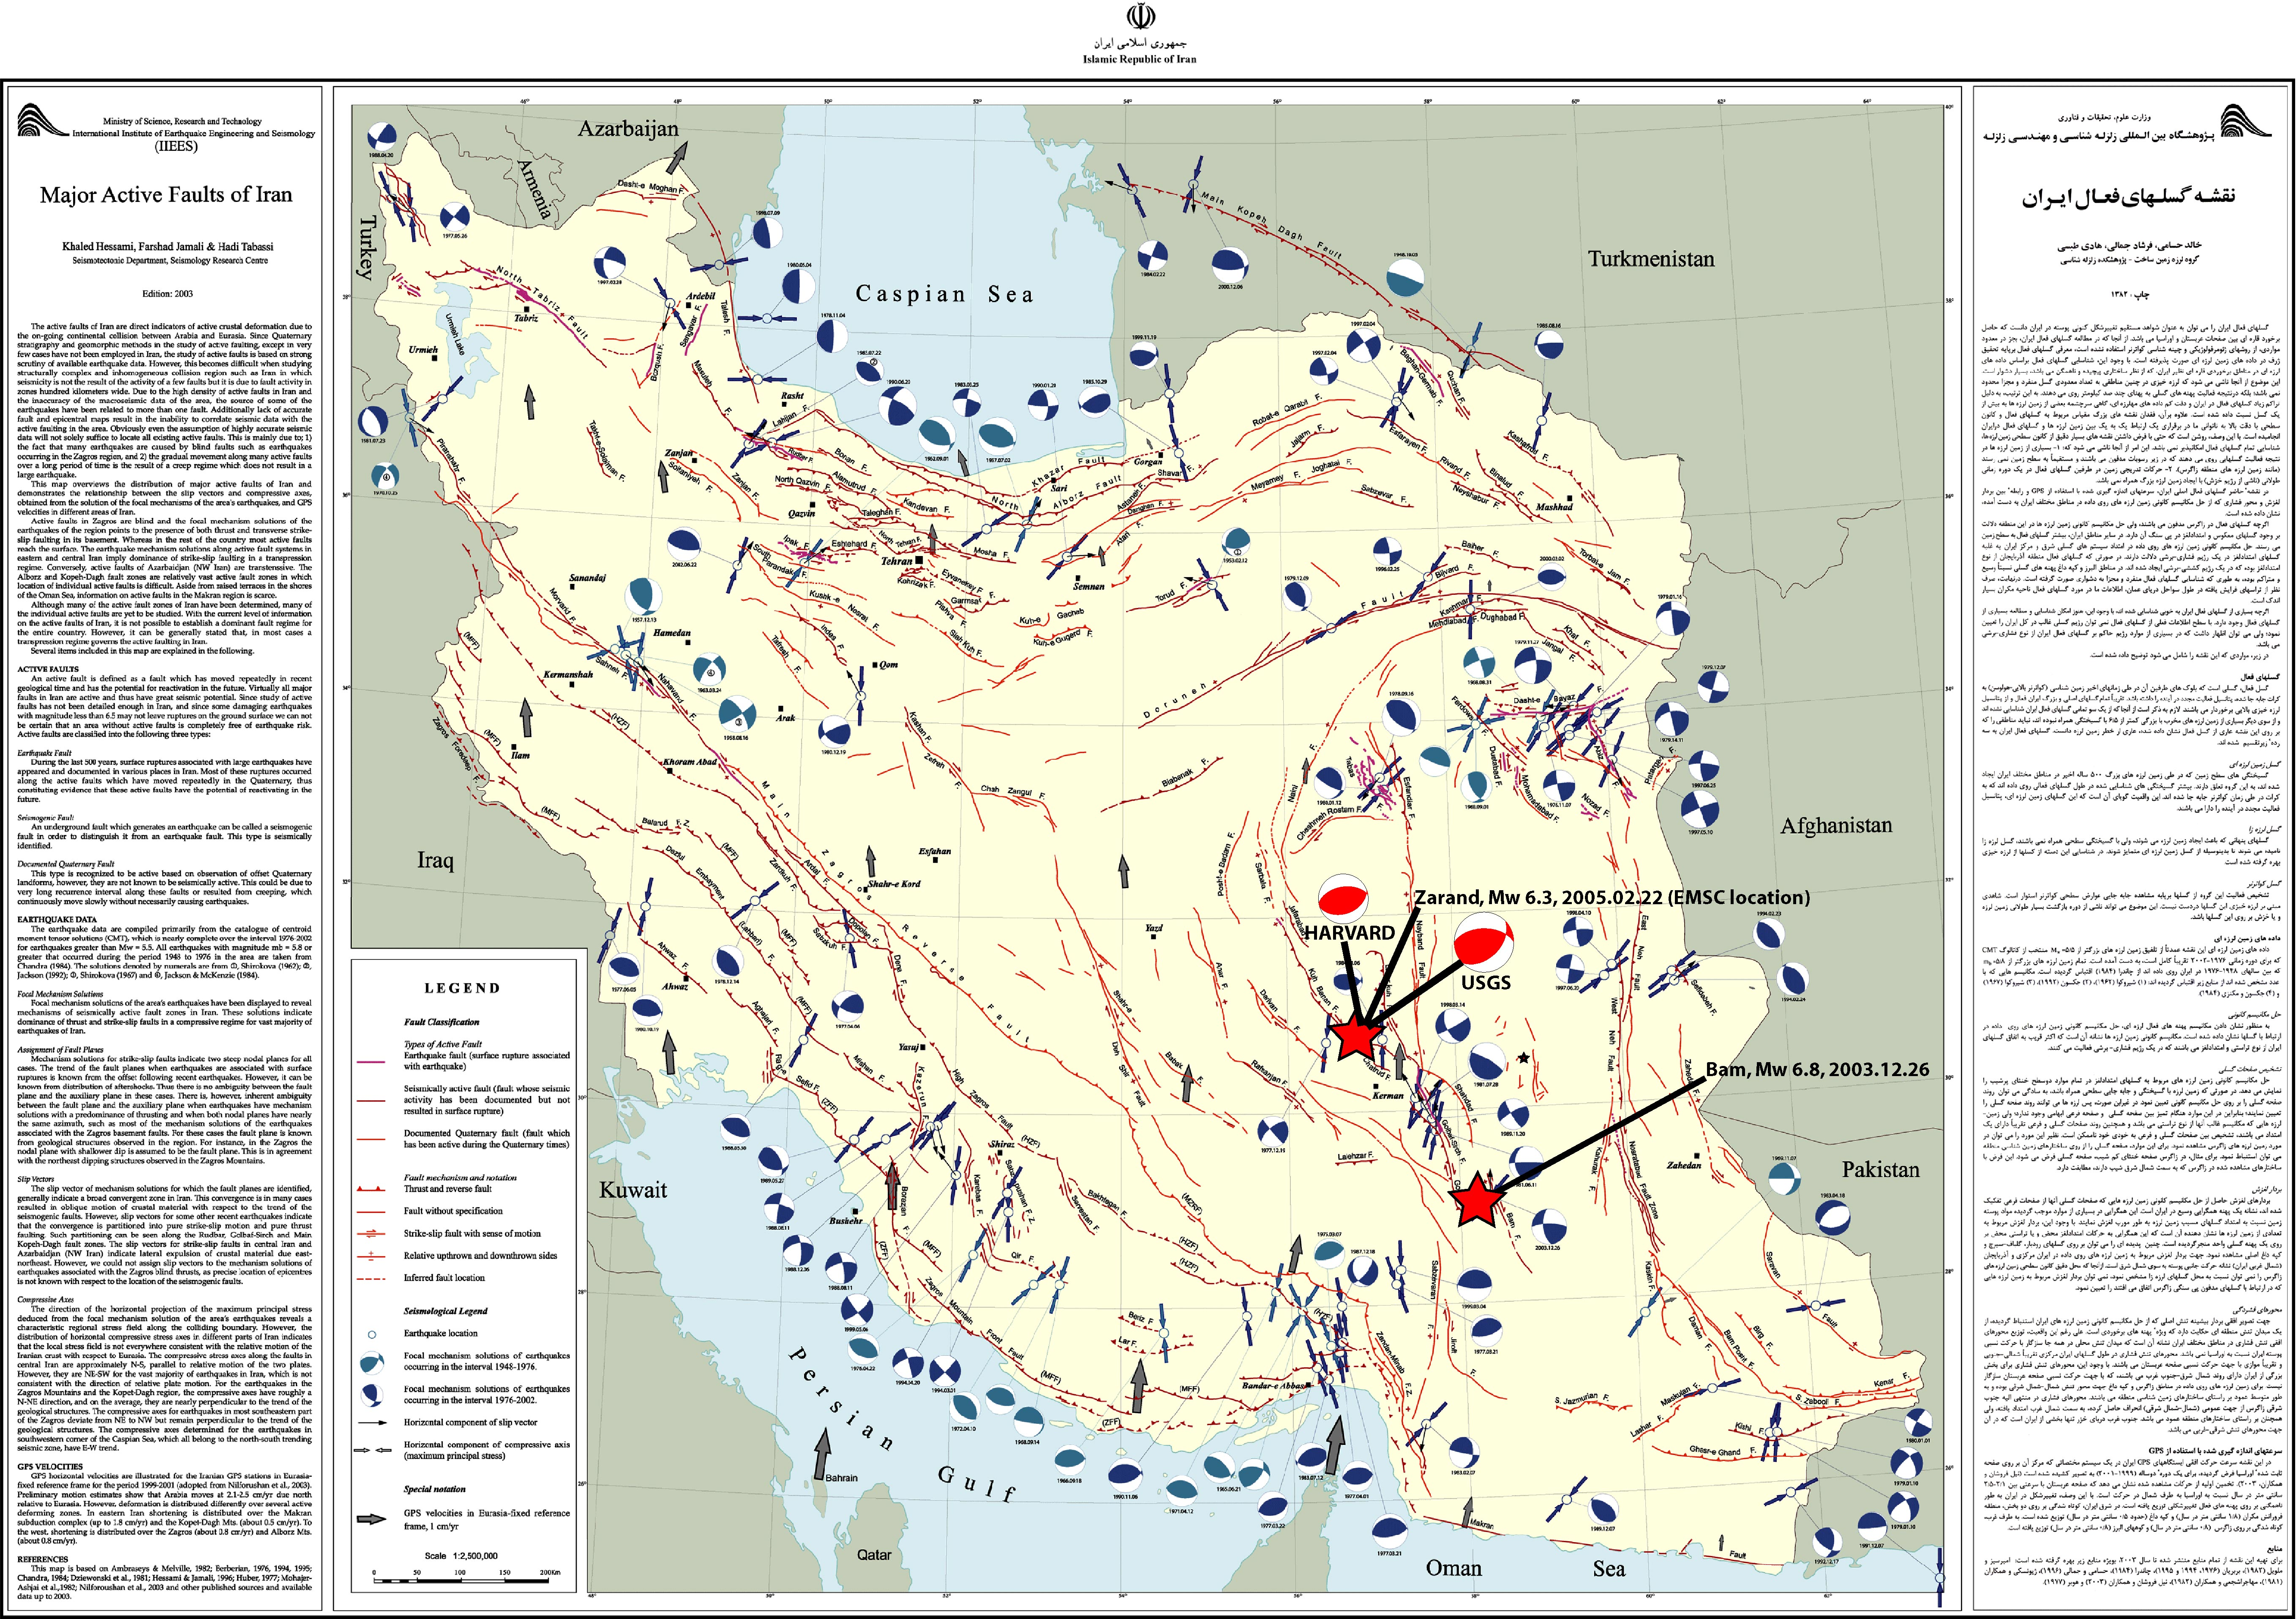 Iranian fault (from IIEES)